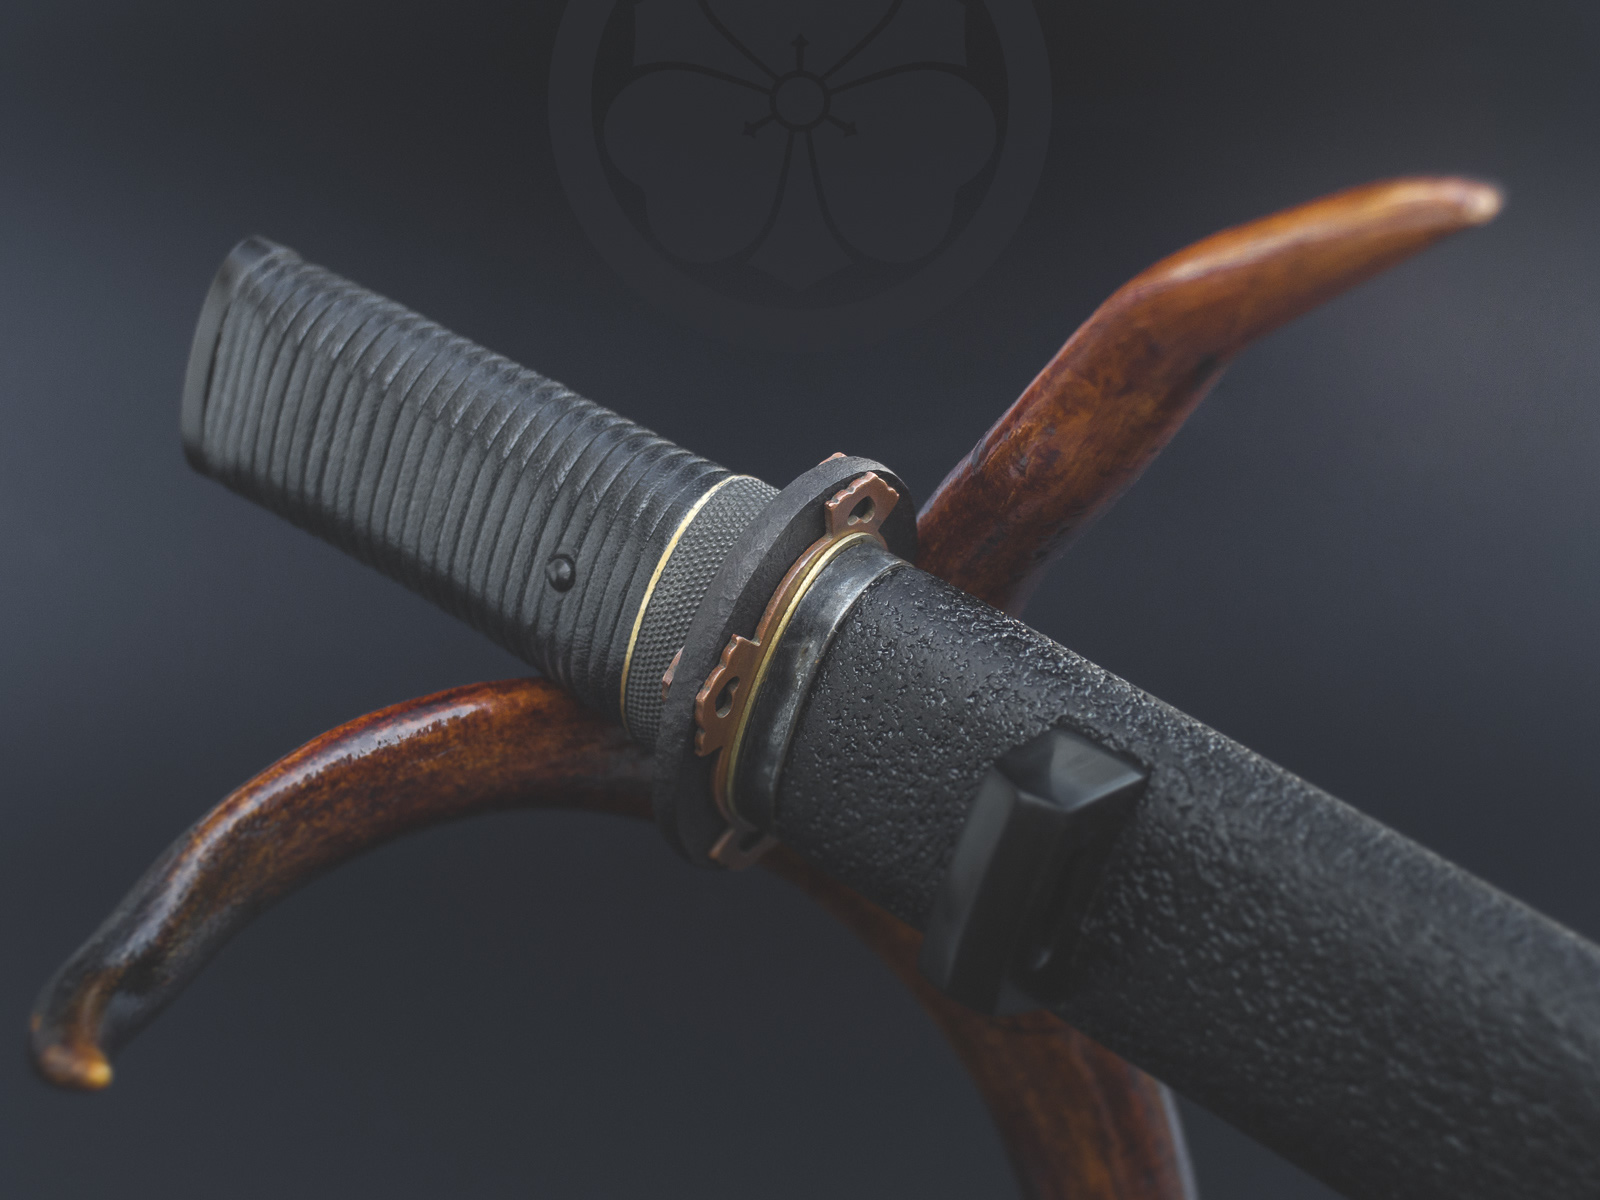 Island Blacksmith: Hand forged tanto made from reclaimed and natural materials using traditional techniques